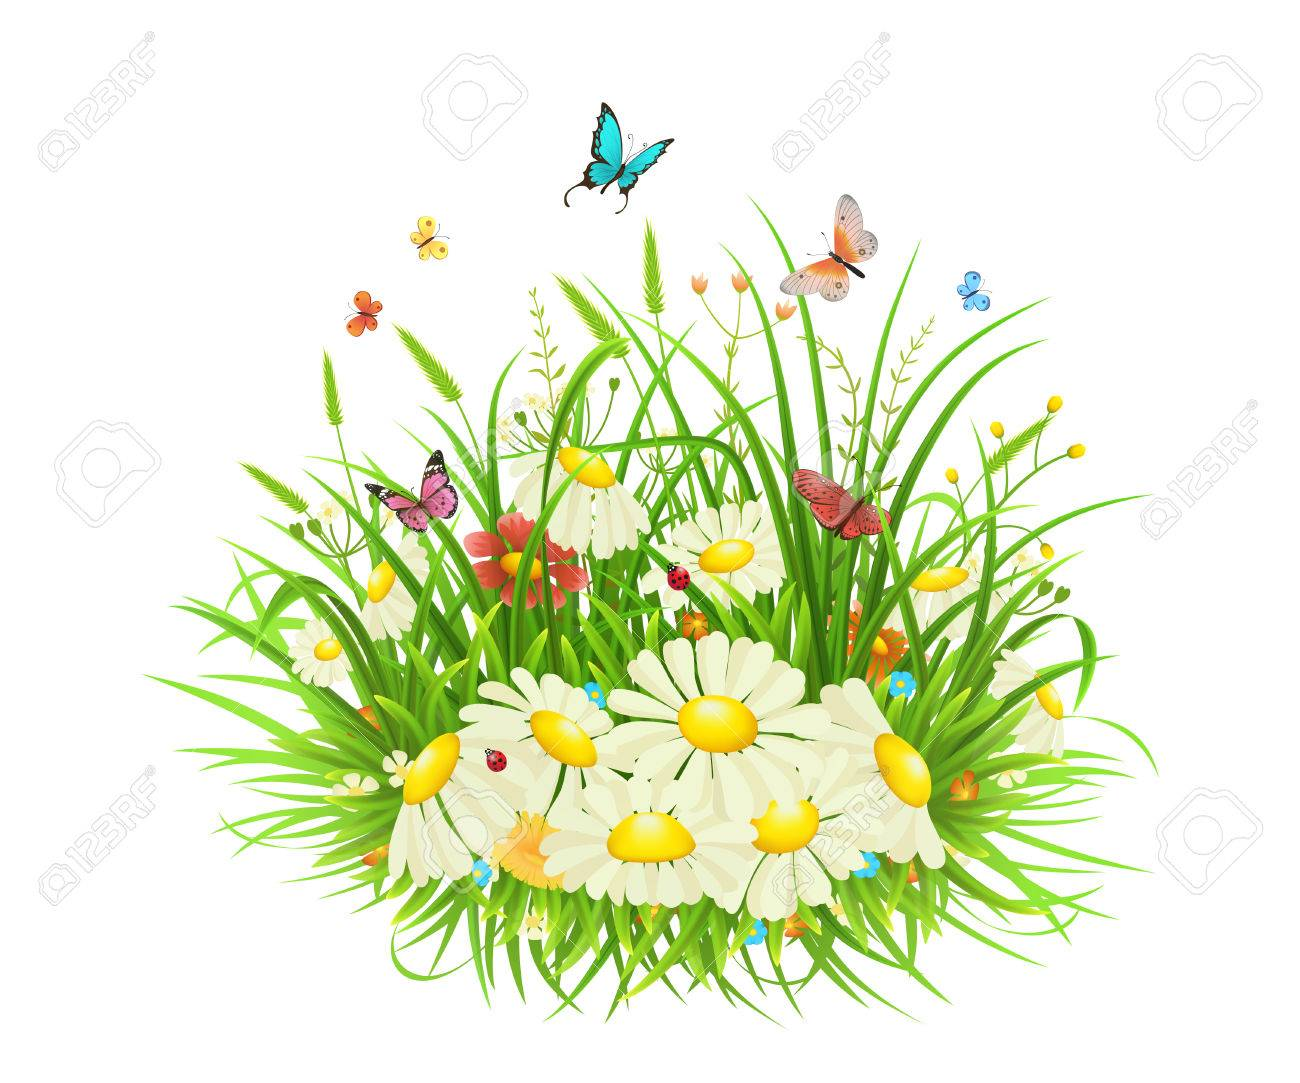 green grass with flowers butterflies and ladybug on white